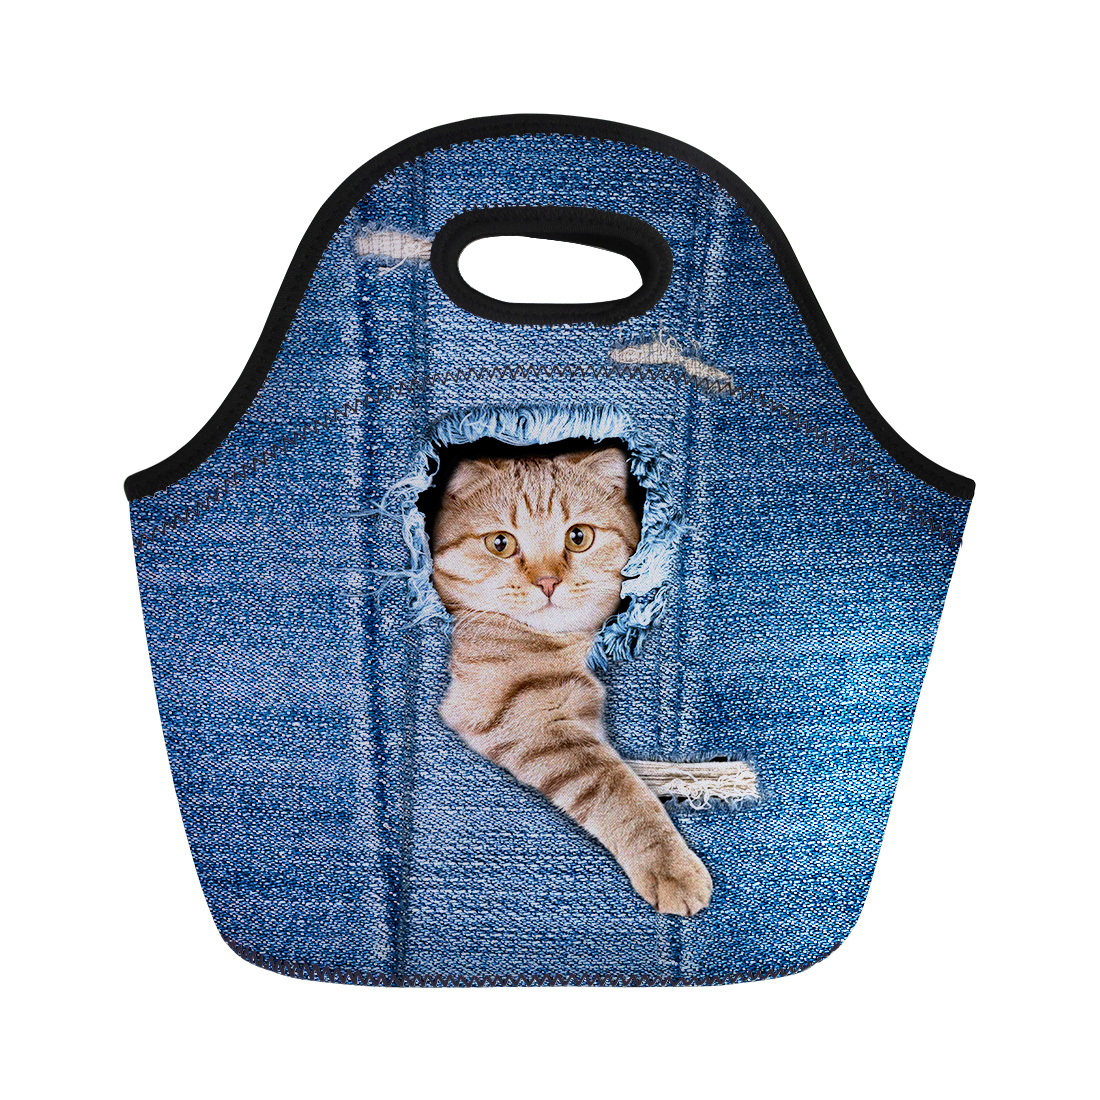 FORUDESIGNS Cute Pocket Cats Lunch Bag for Kids Small Animals Print Food Carry Women Denim Design Thermal Insullate Lunchbag